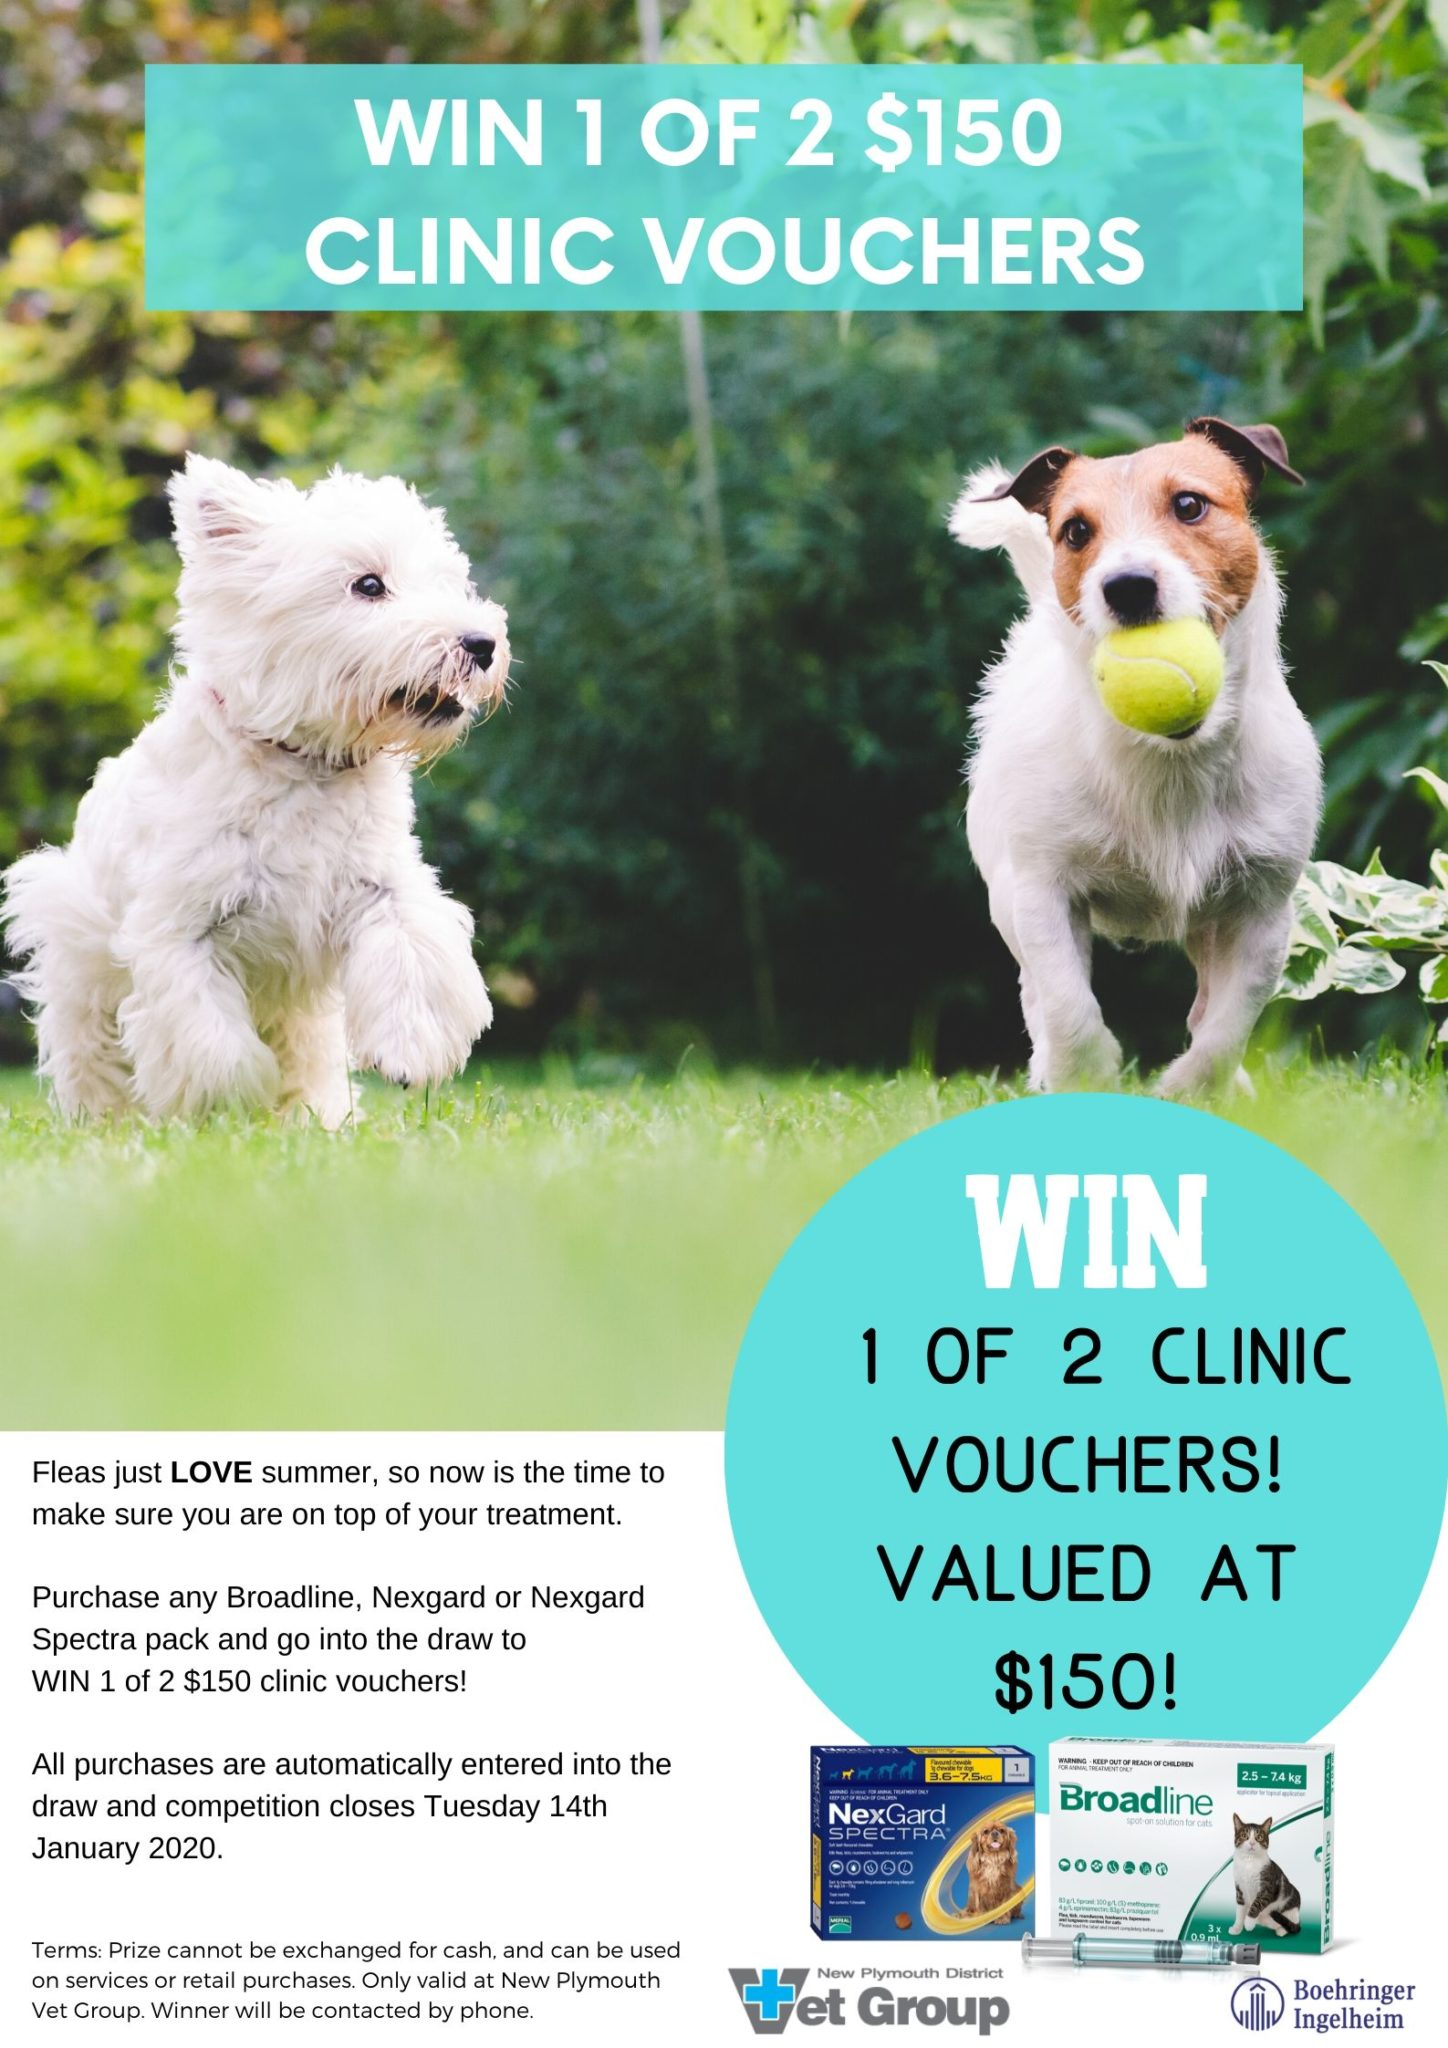 Win 1 Of 2 $150 Clinic Vouchers!